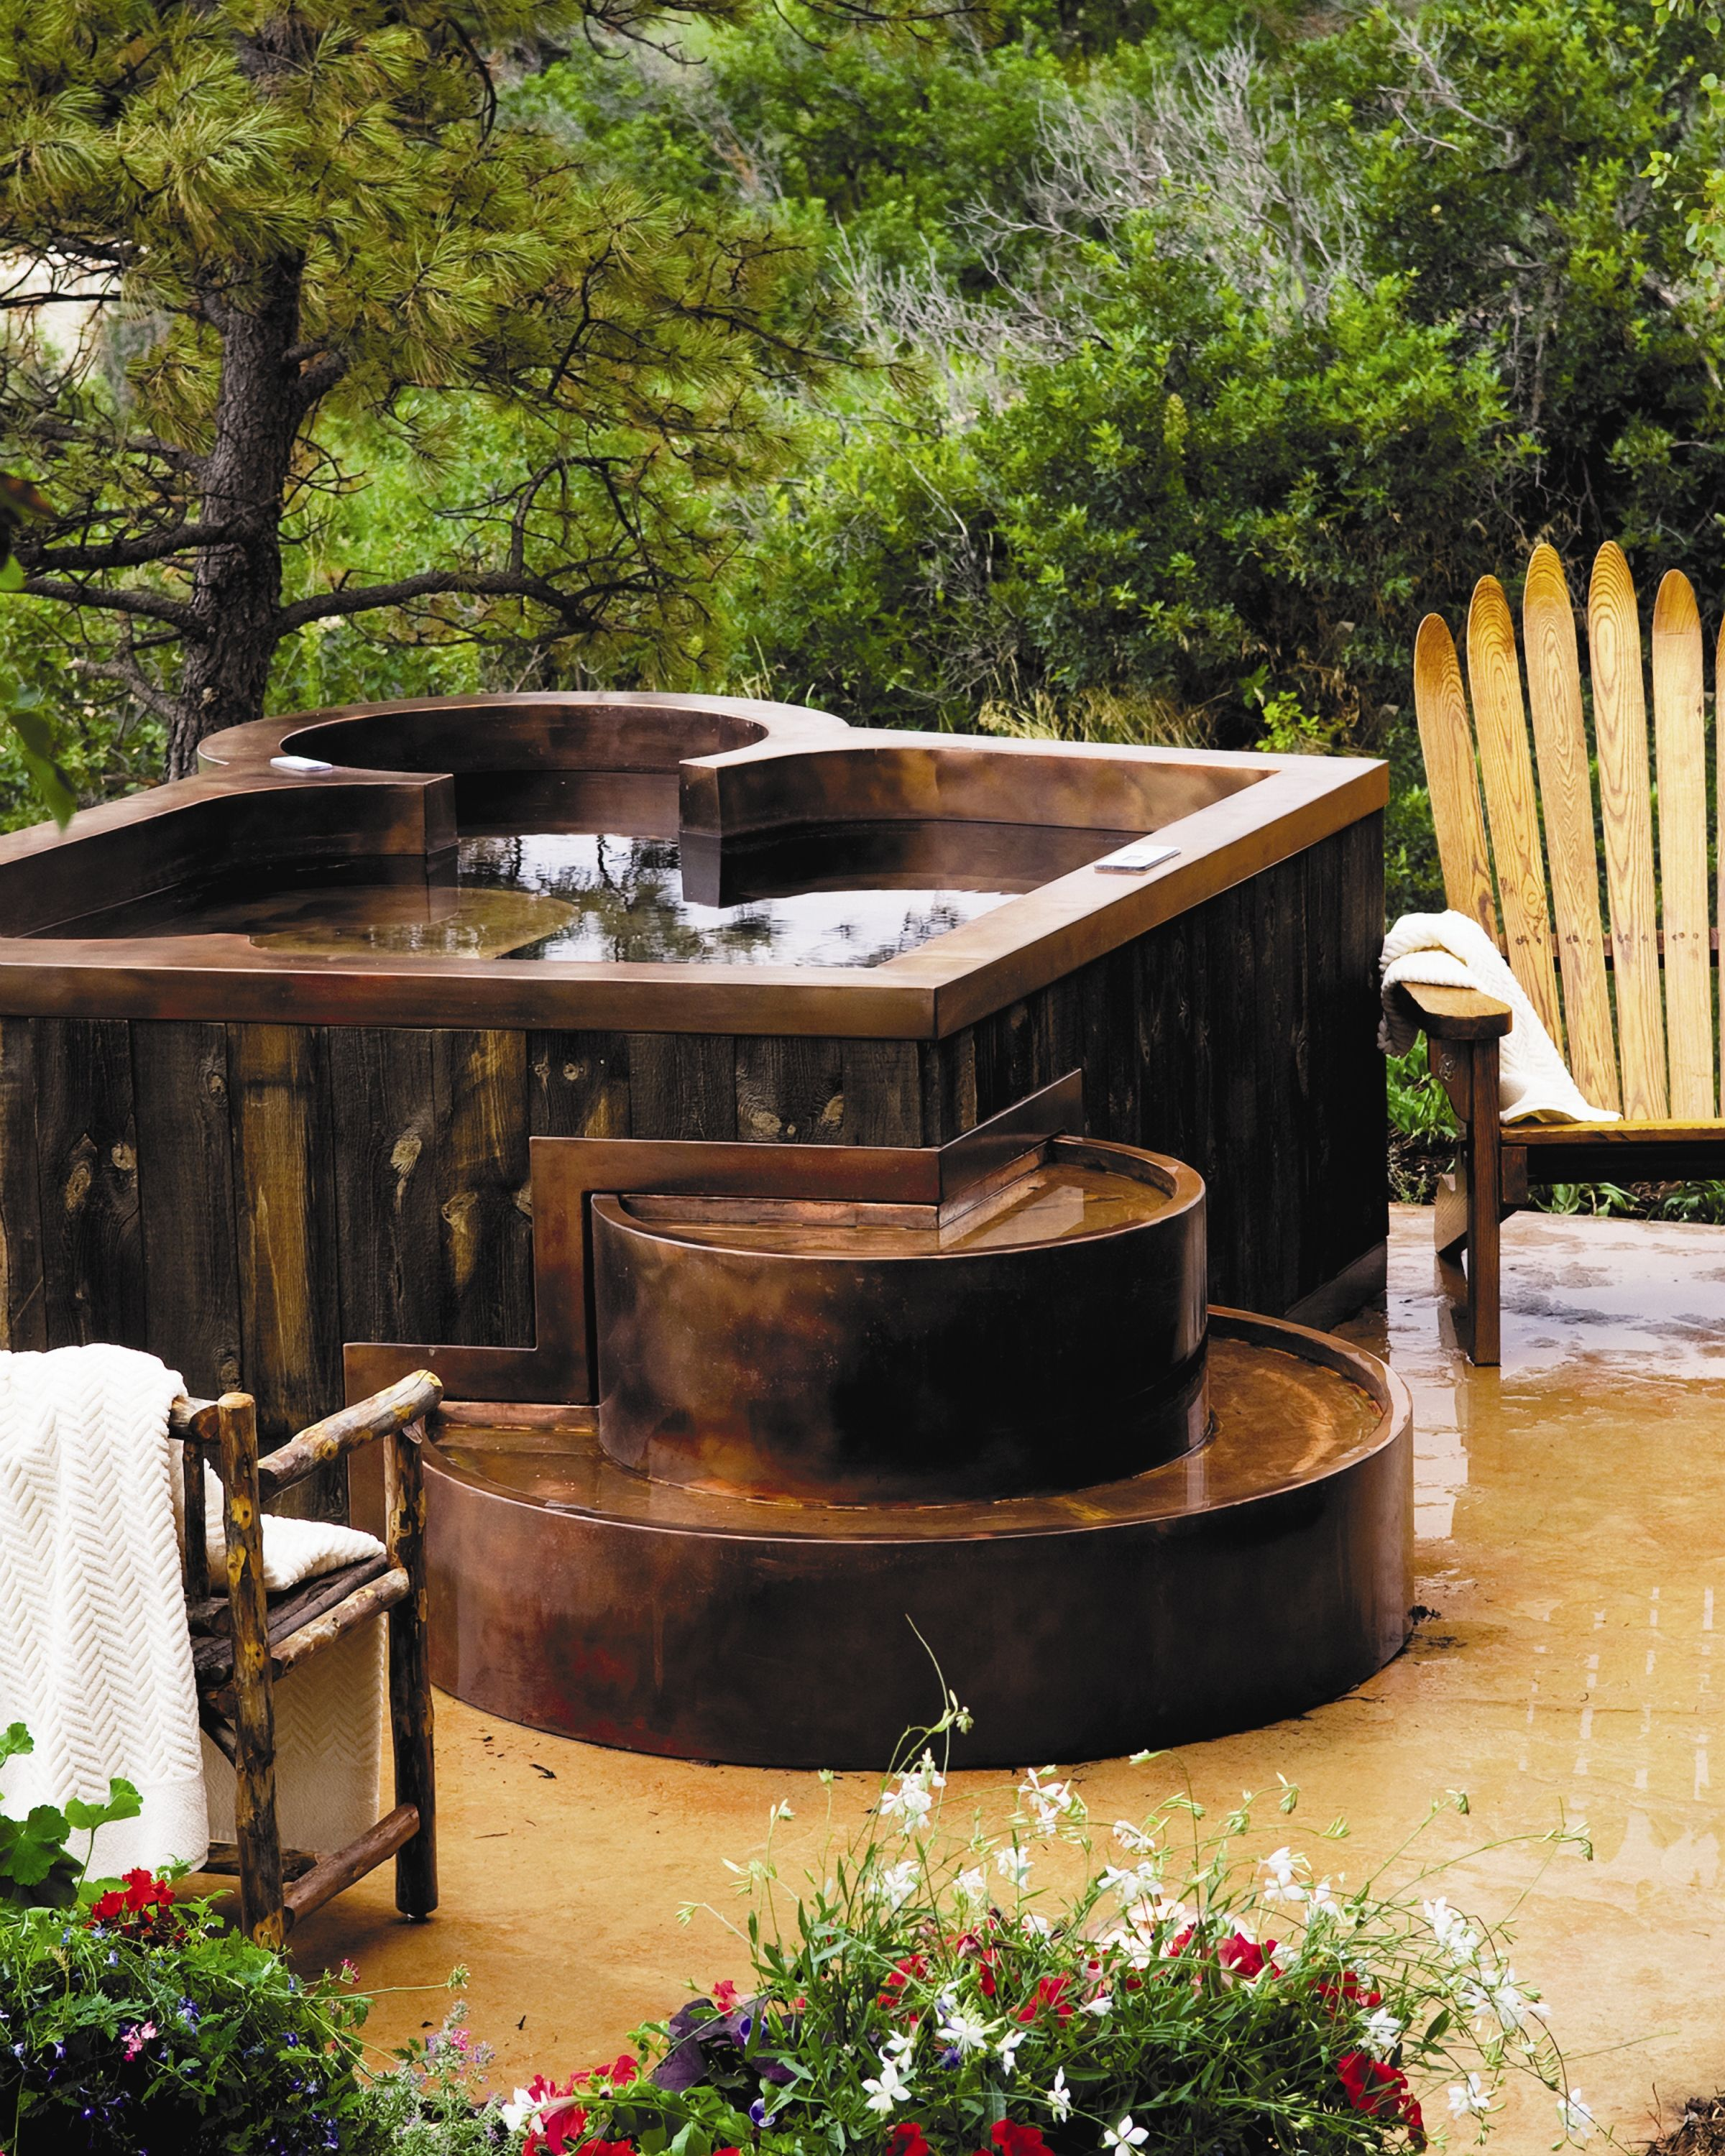 Custom Copper Hot Tub With Recycled Barn Board Coolest Hot Tub Ever Blockhaus Hauser Ferienhaus Jacuzzi